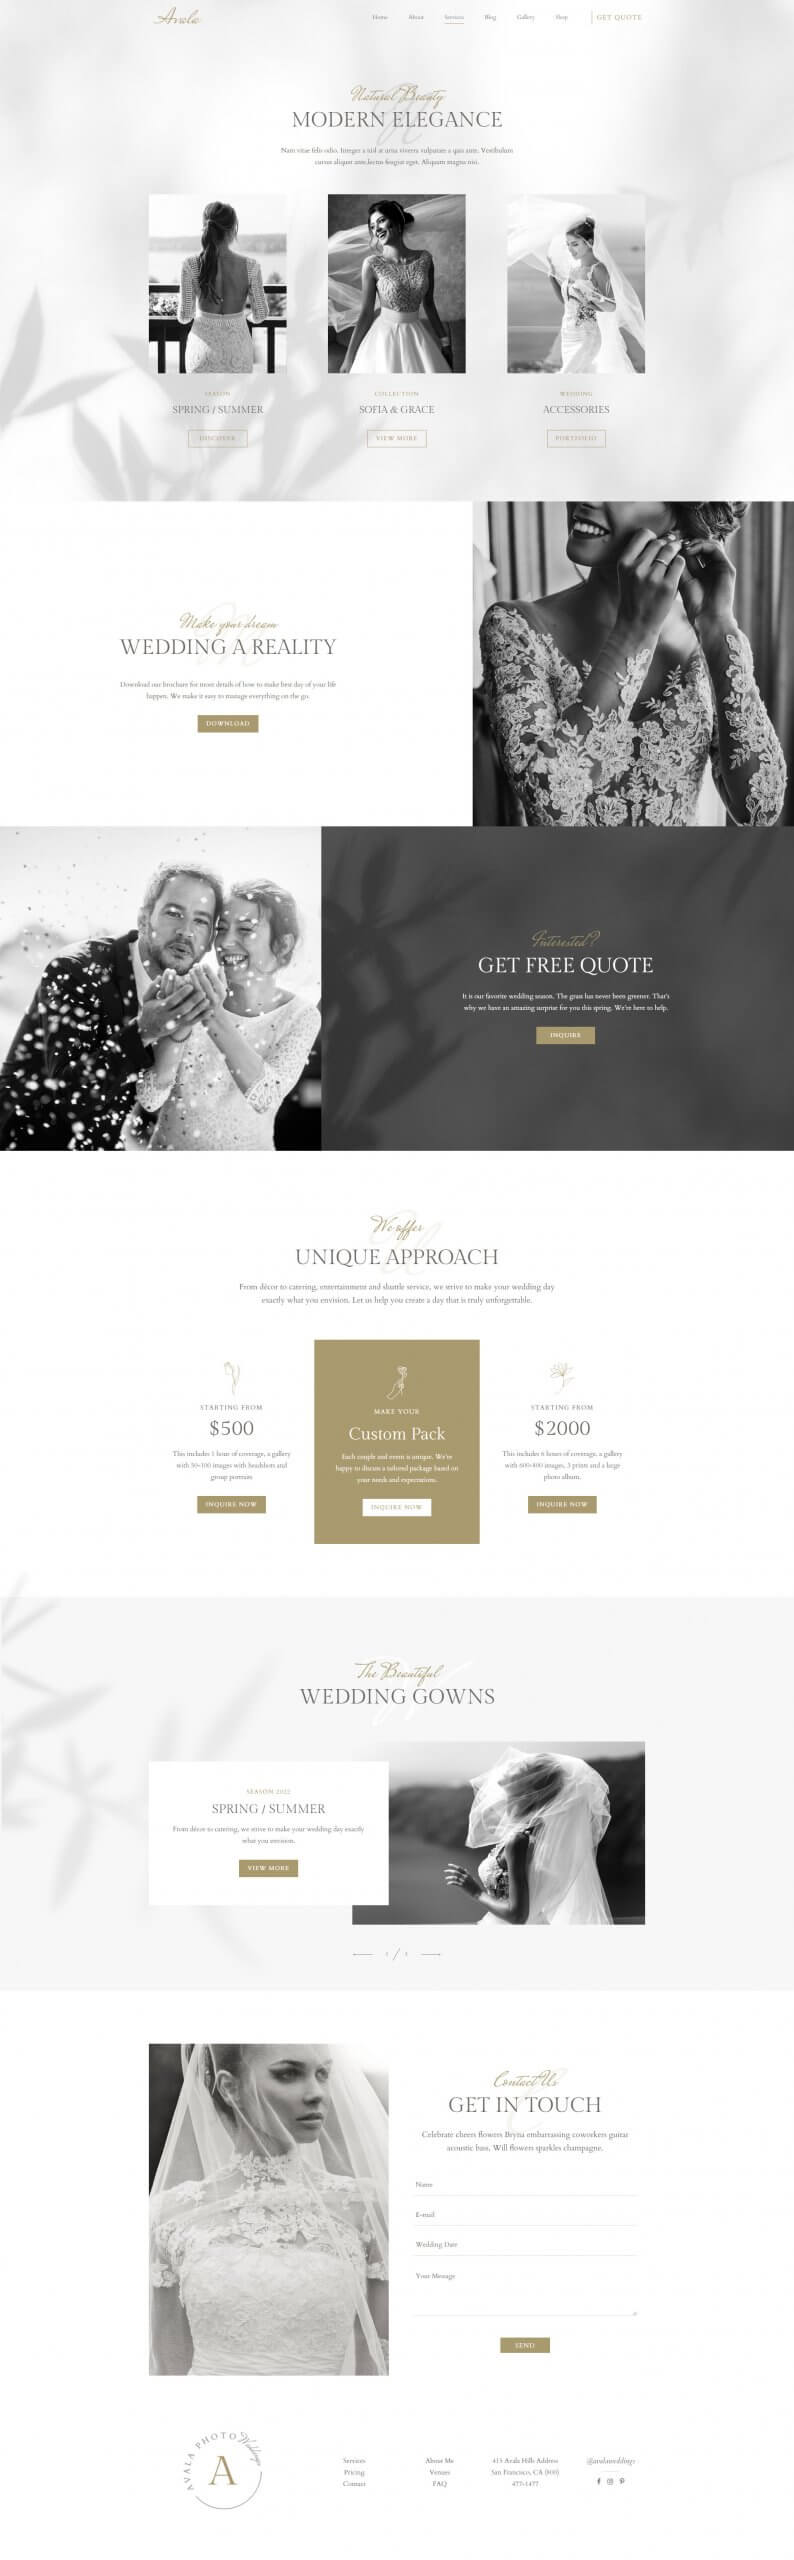 http://avala.bold-themes.com/wp-content/uploads/2021/02/Winter-Services-scaled.jpg